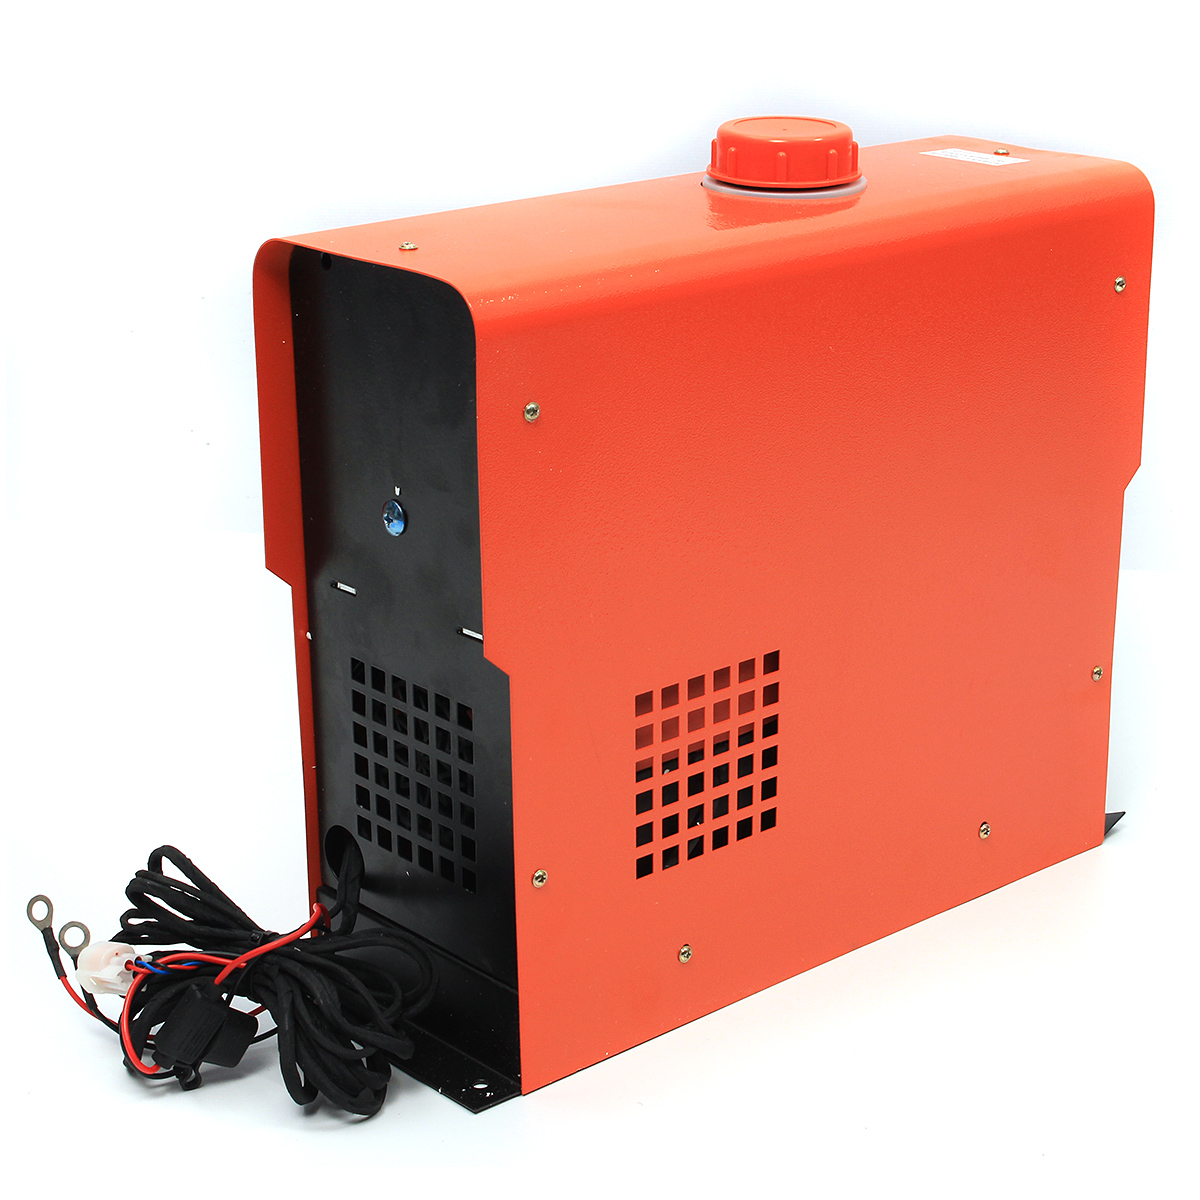 5KW 12V 5kw Diesel Air Parking Heater Diesel Heating Machine Car Heater